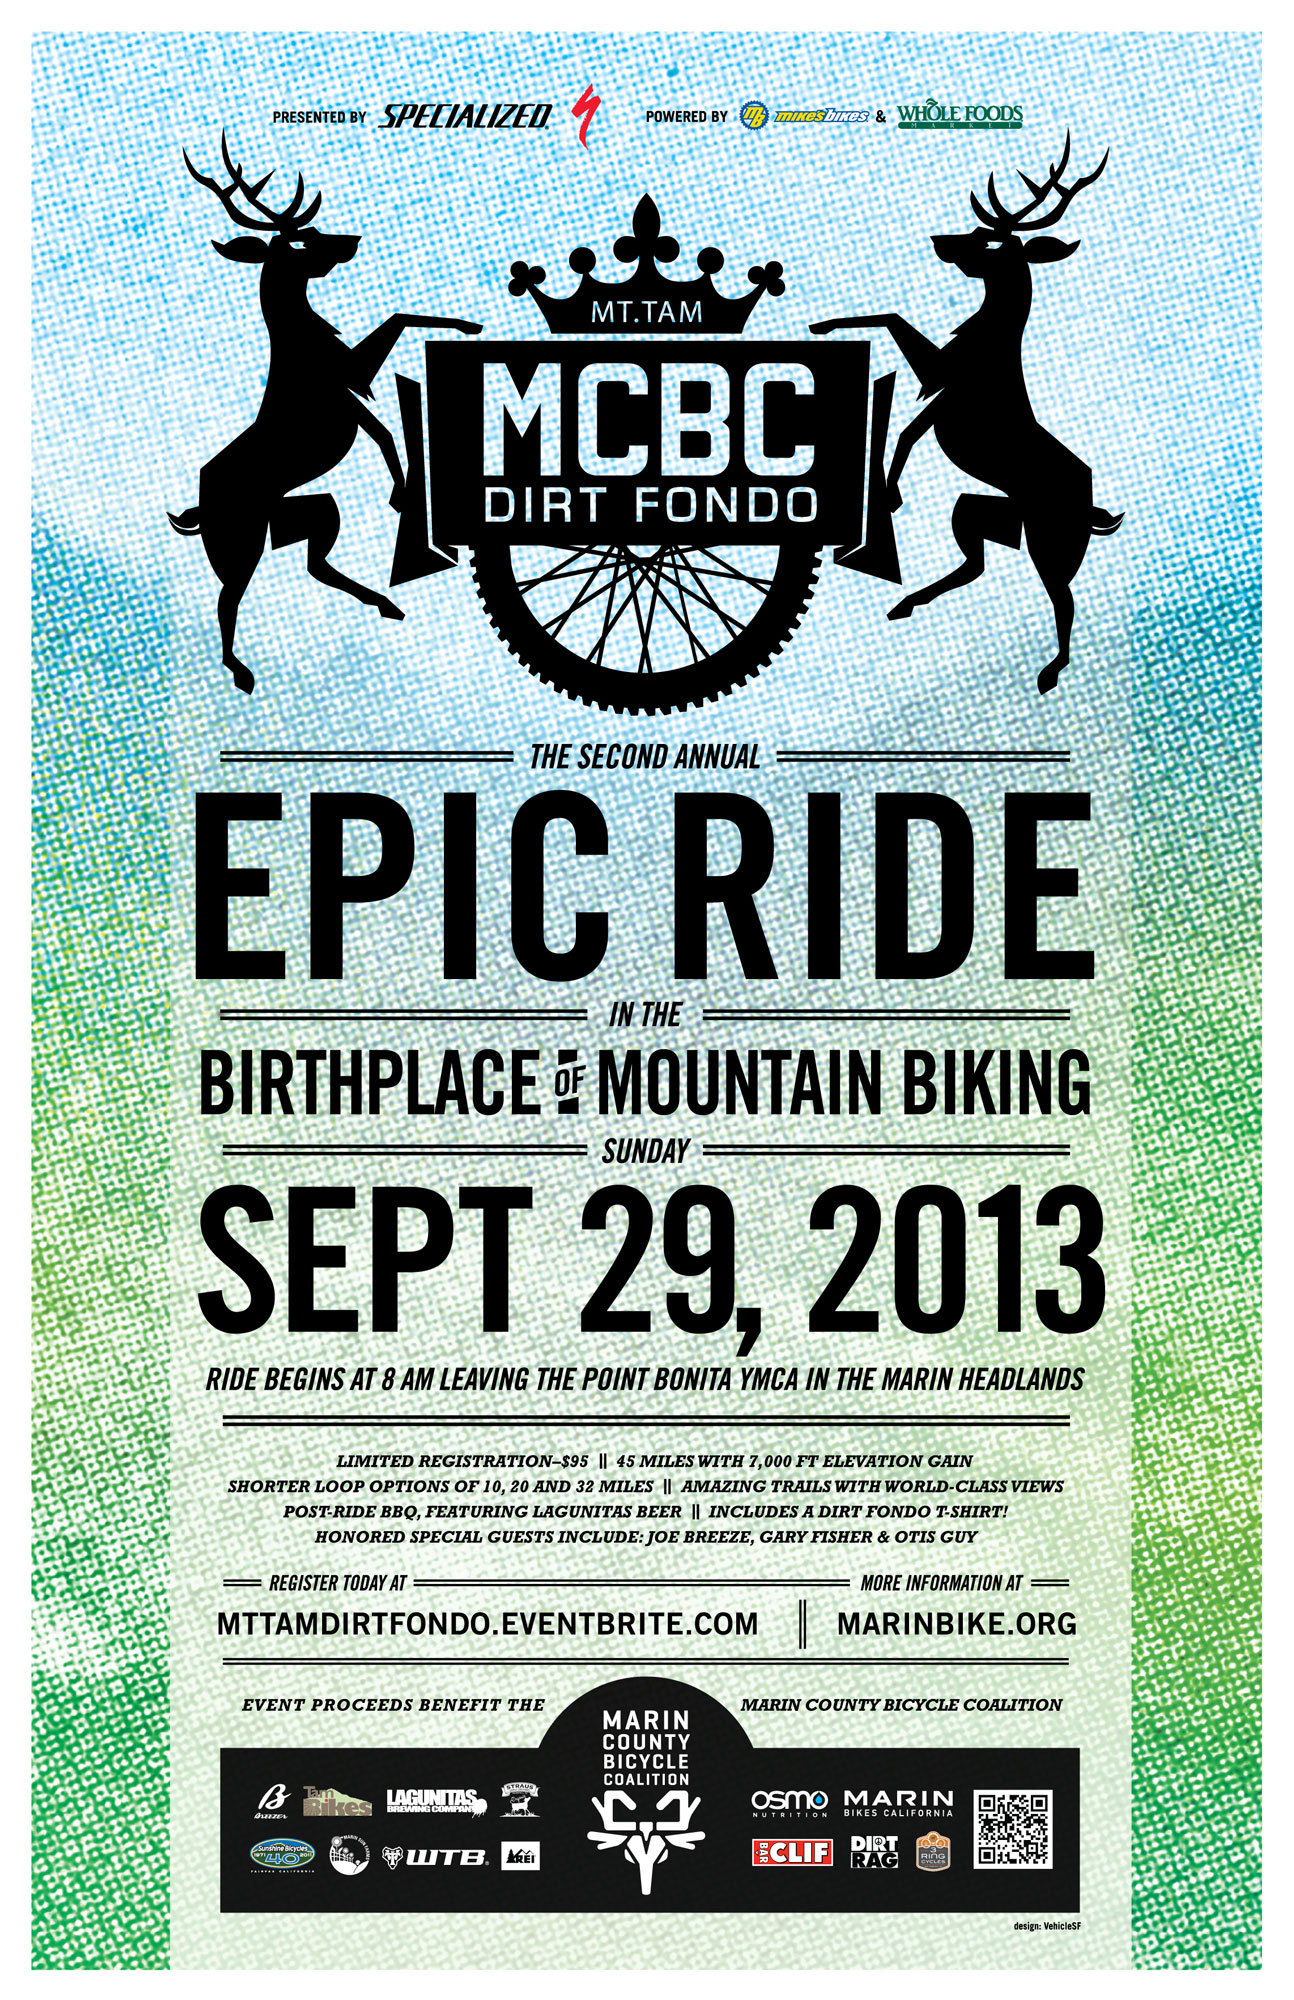 Dirt Fondo 2013 poster announcing date and event with gradient graphic designs and deer illustrations